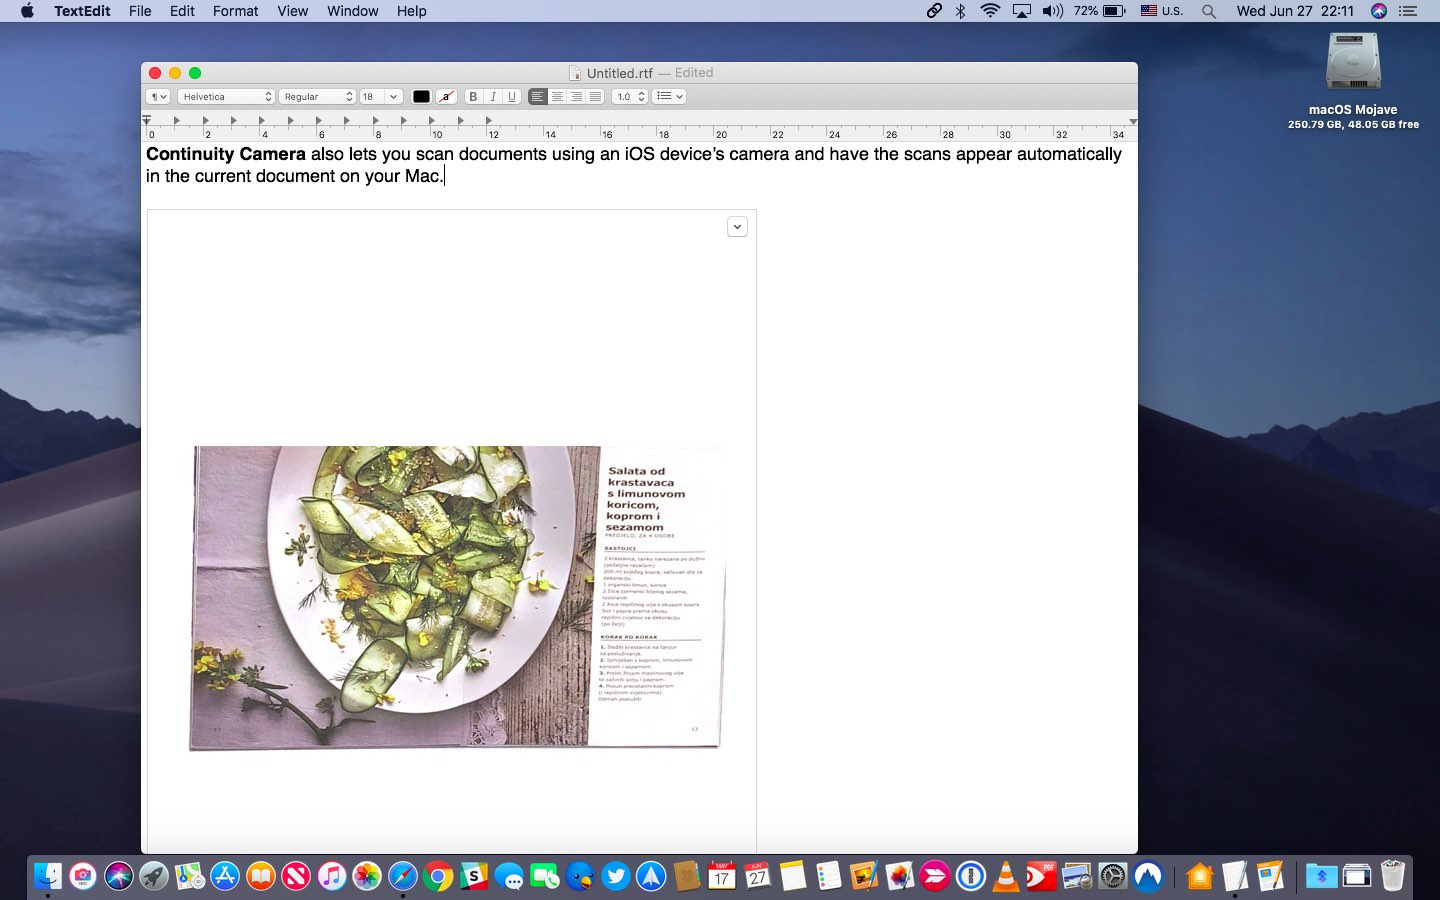 iOS's document scanner uses computer vision to produce high-quality scans for the Continuity Camera feature on your Mac